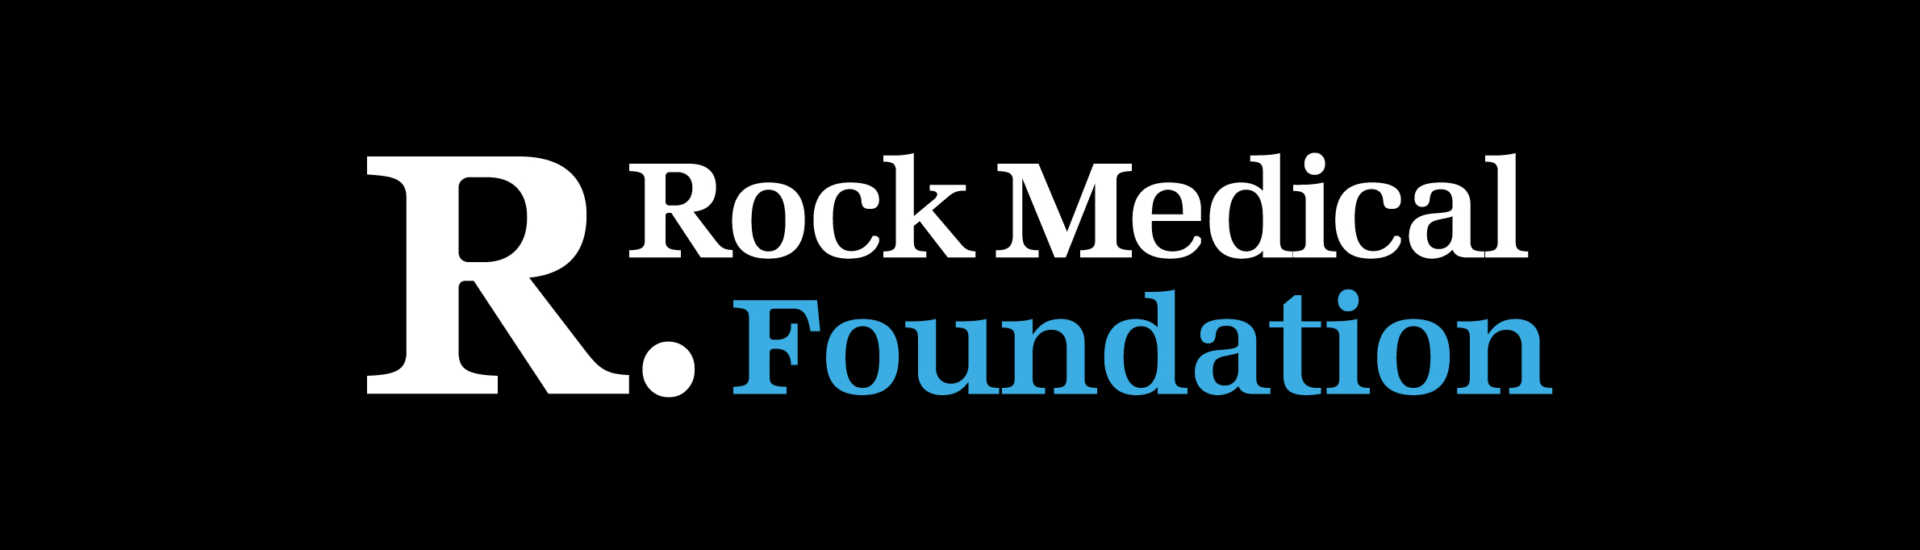 Rock Foundation Logos-04